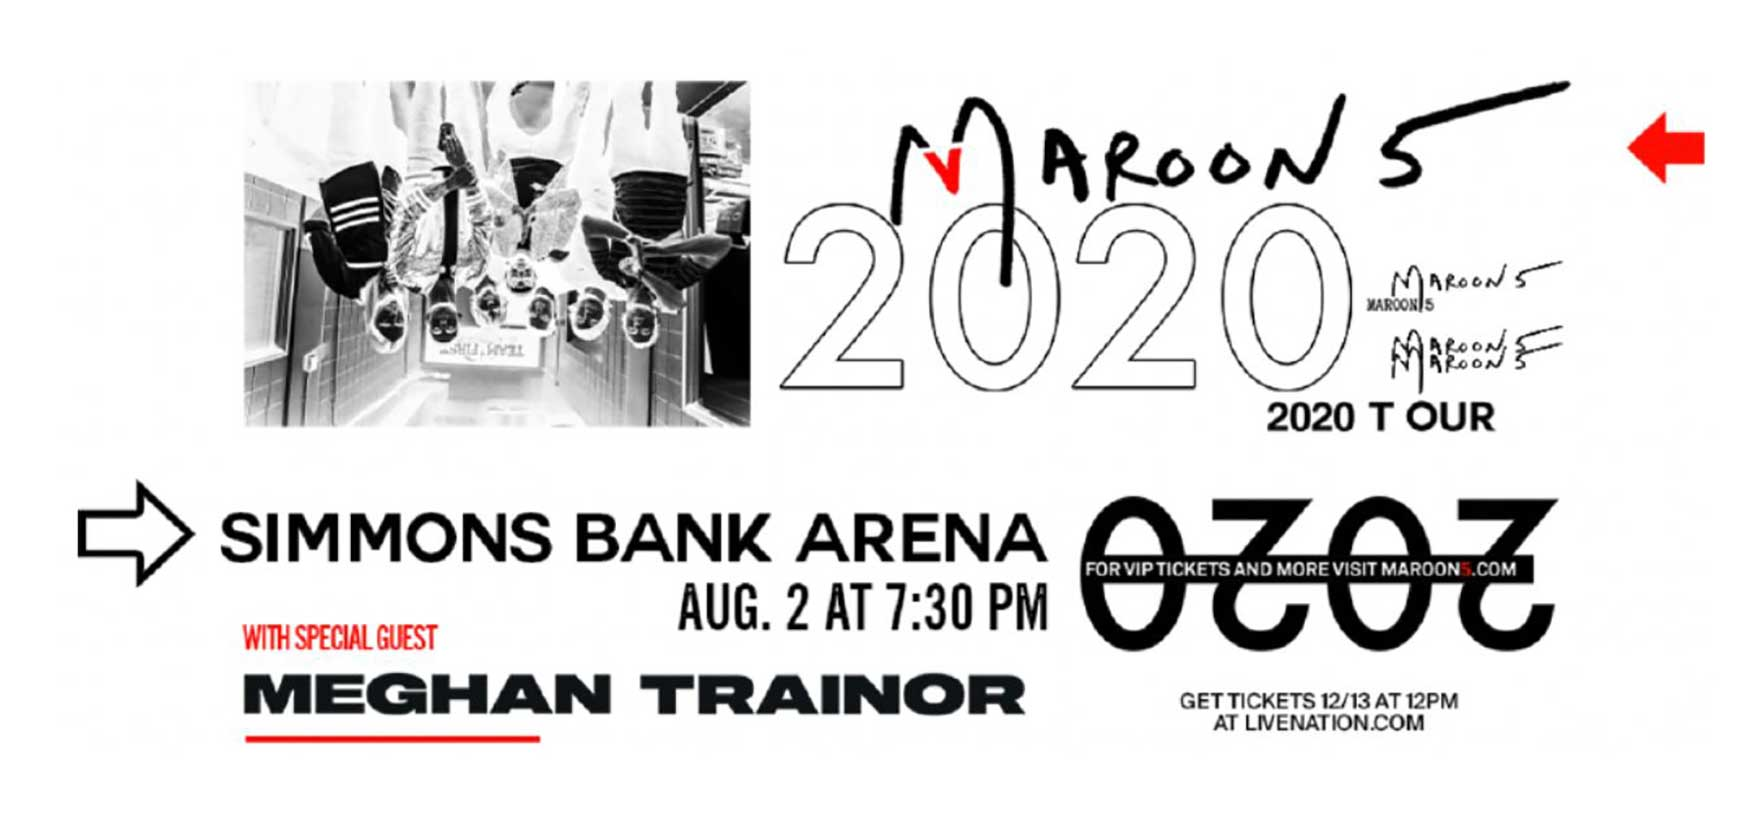 Maroon 5 Tour 2020.Maroon 5 Comes To Arkansas In August 2020 Kark